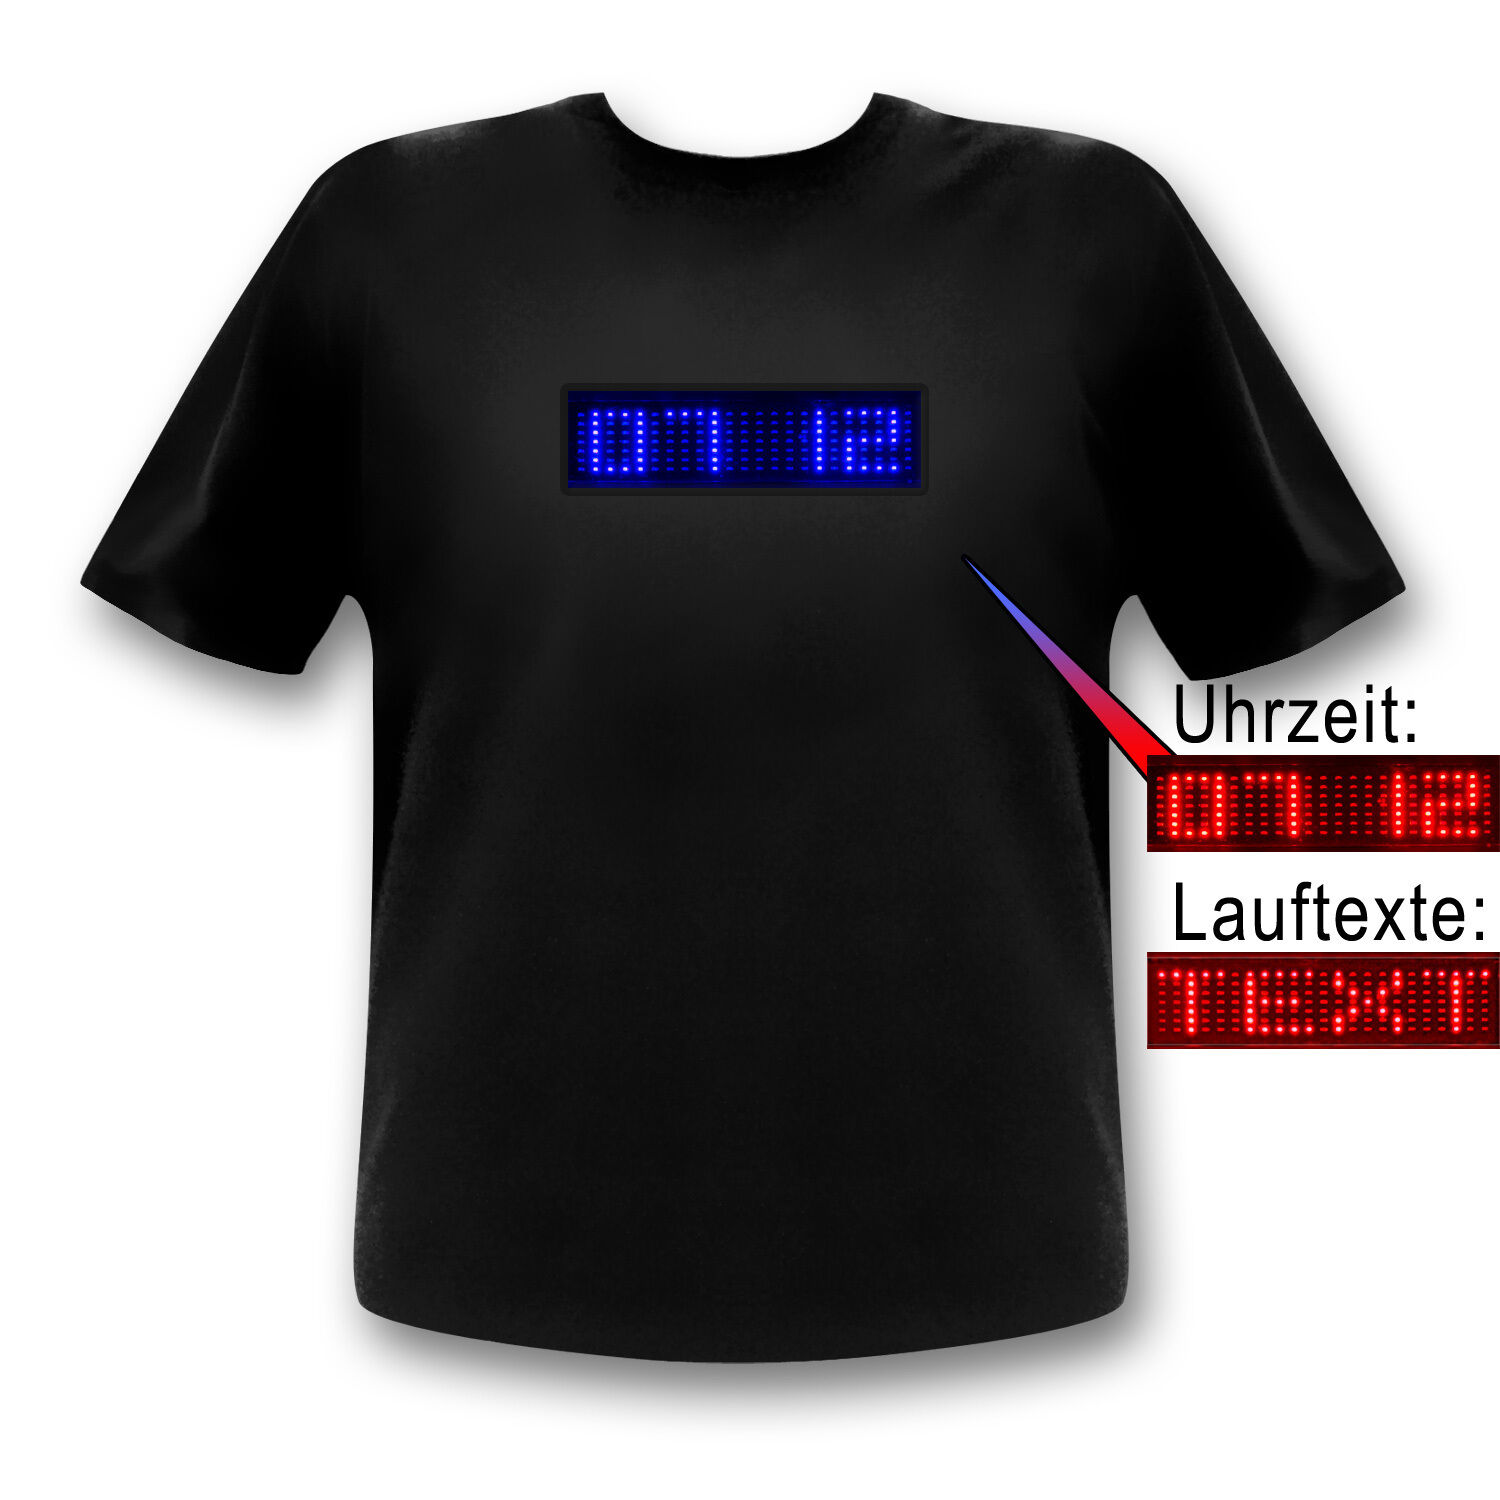 Party-Shirt Uhzeit LED T-Shirt - Fun-Shirt mit programmierbarerm LED-Display